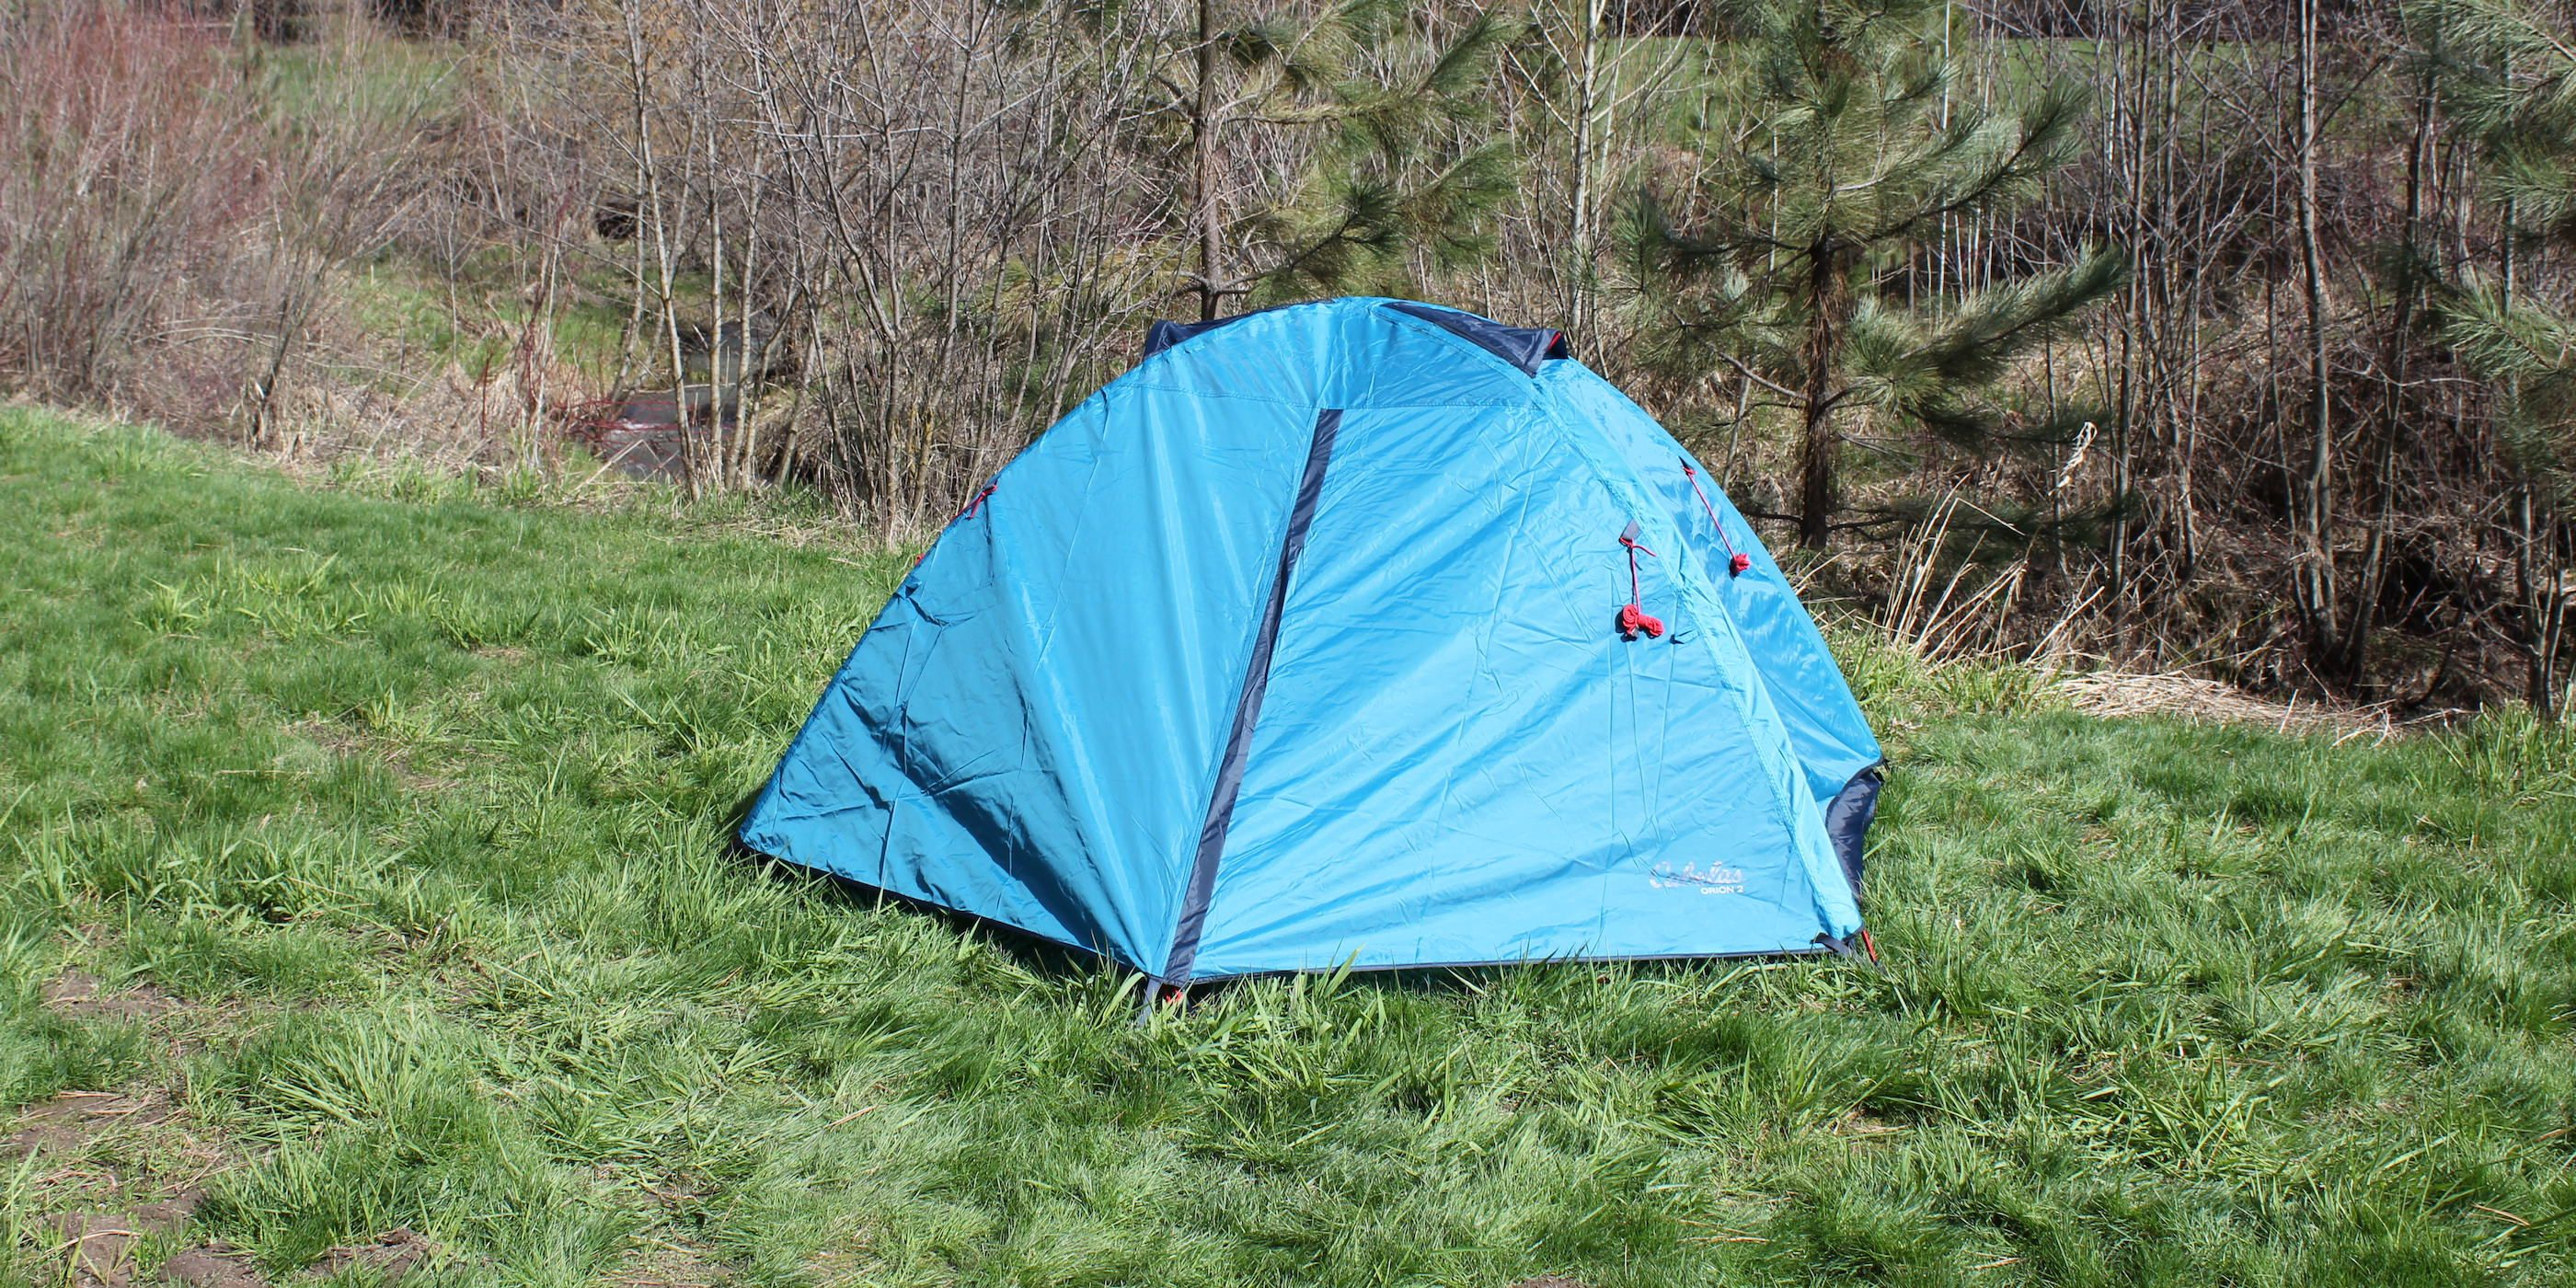 Cabelau0027s Orion Backpacker Tent Review : backpacking tents reviews - memphite.com